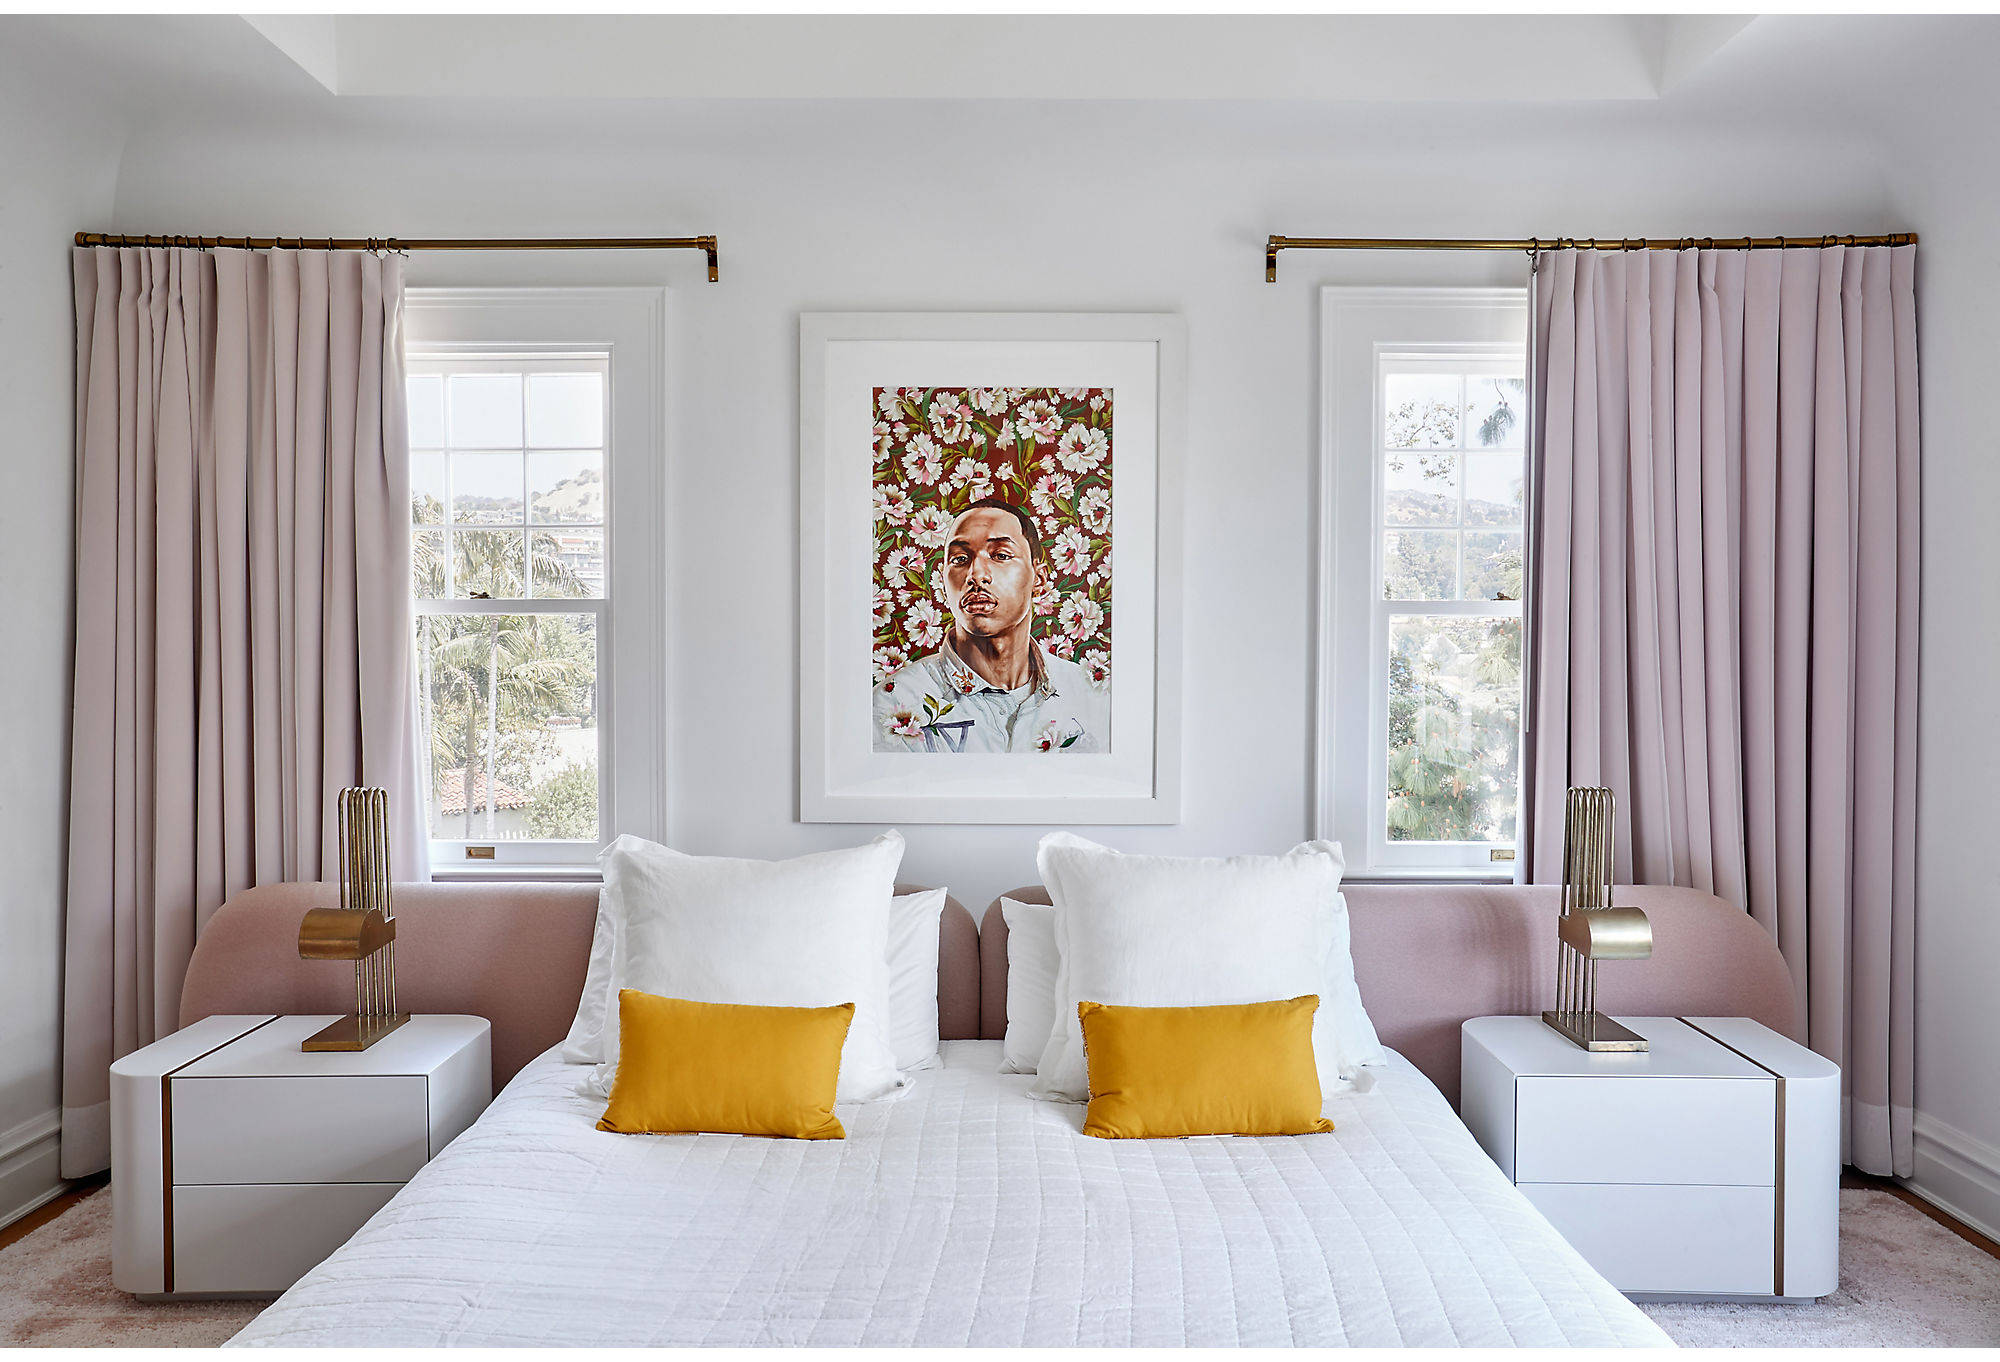 A portrait by Kehinde Wiley hangs over a custom bed designed by Ghislaine.